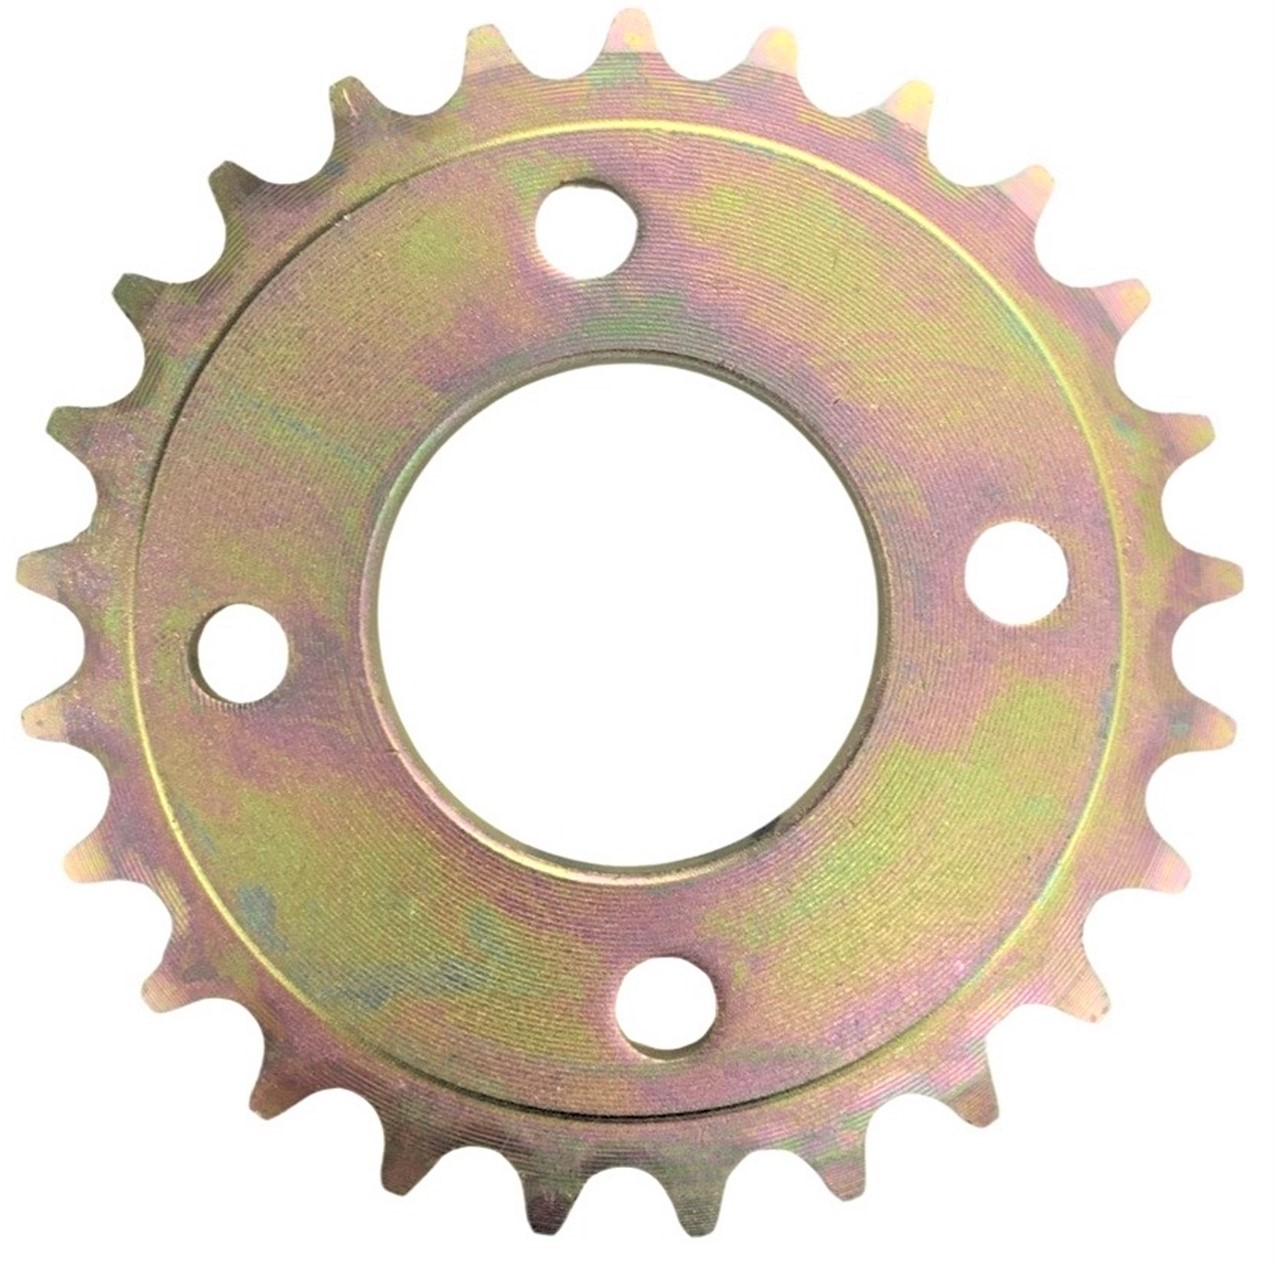 Rear Sprocket #420 25th Fits Coleman KT196 GoKarts + More ID=30mm Bolts c/c=68mm